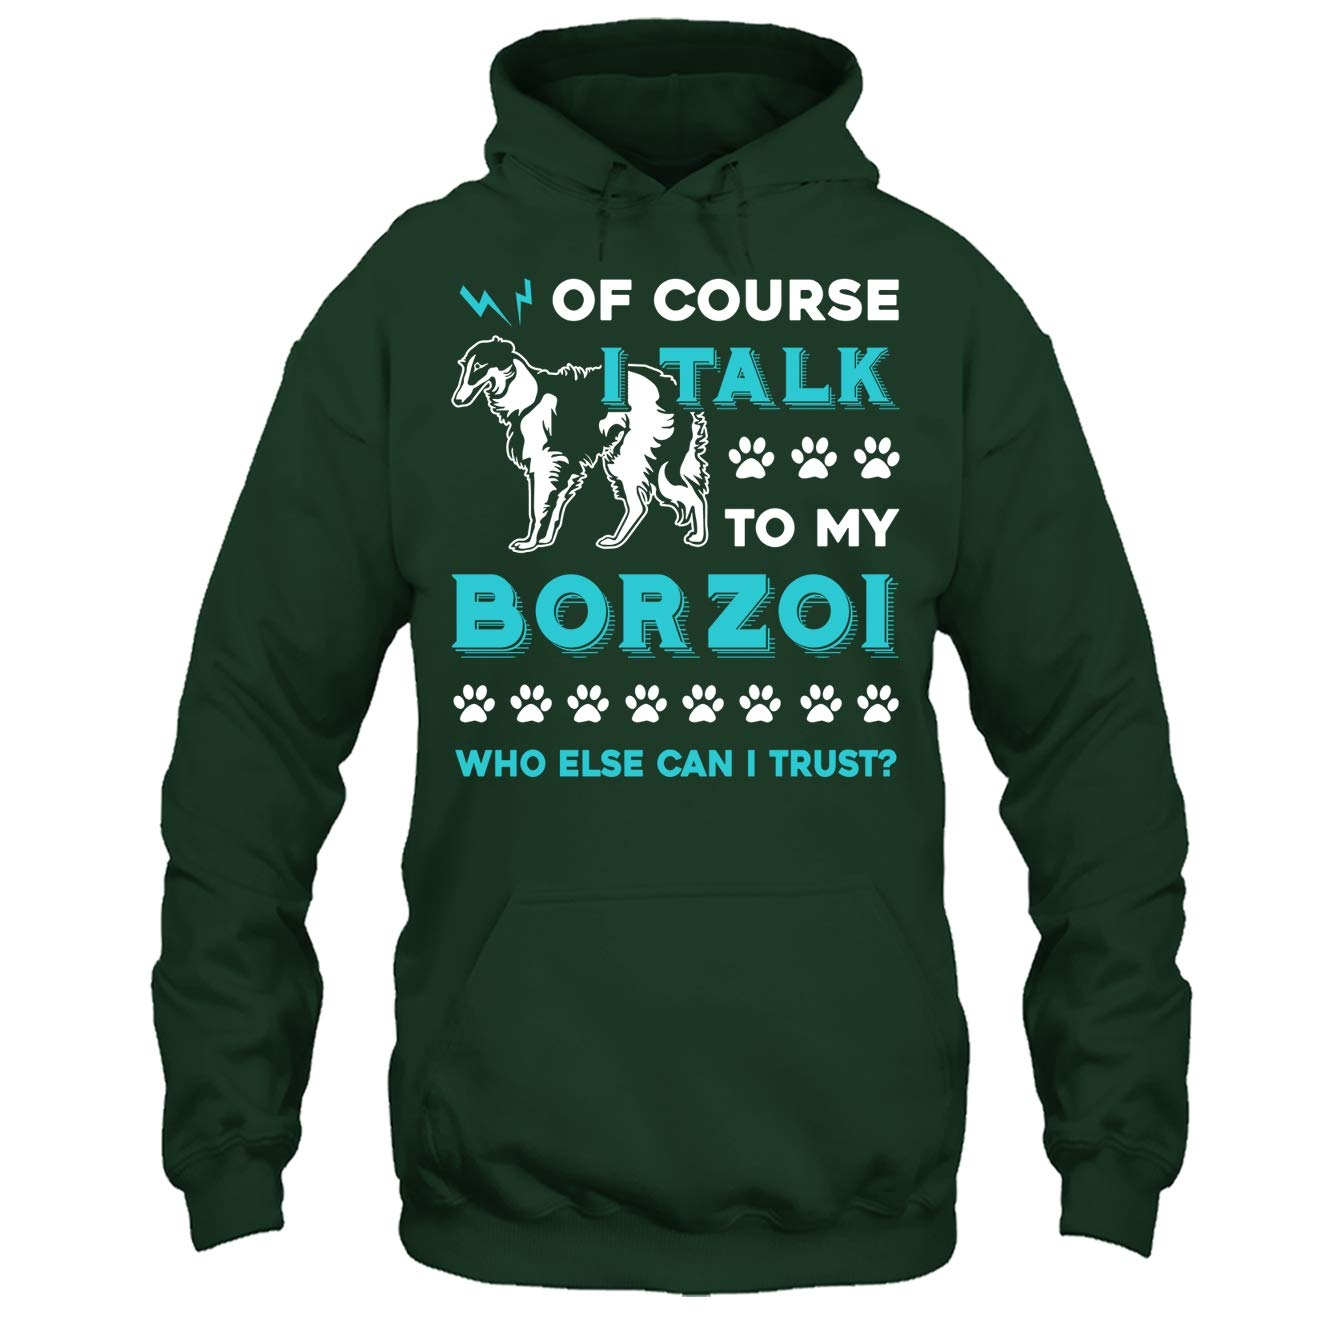 Addblue Borzoi Cool Tee Shirt I Talk to My Borzoi Tshirt